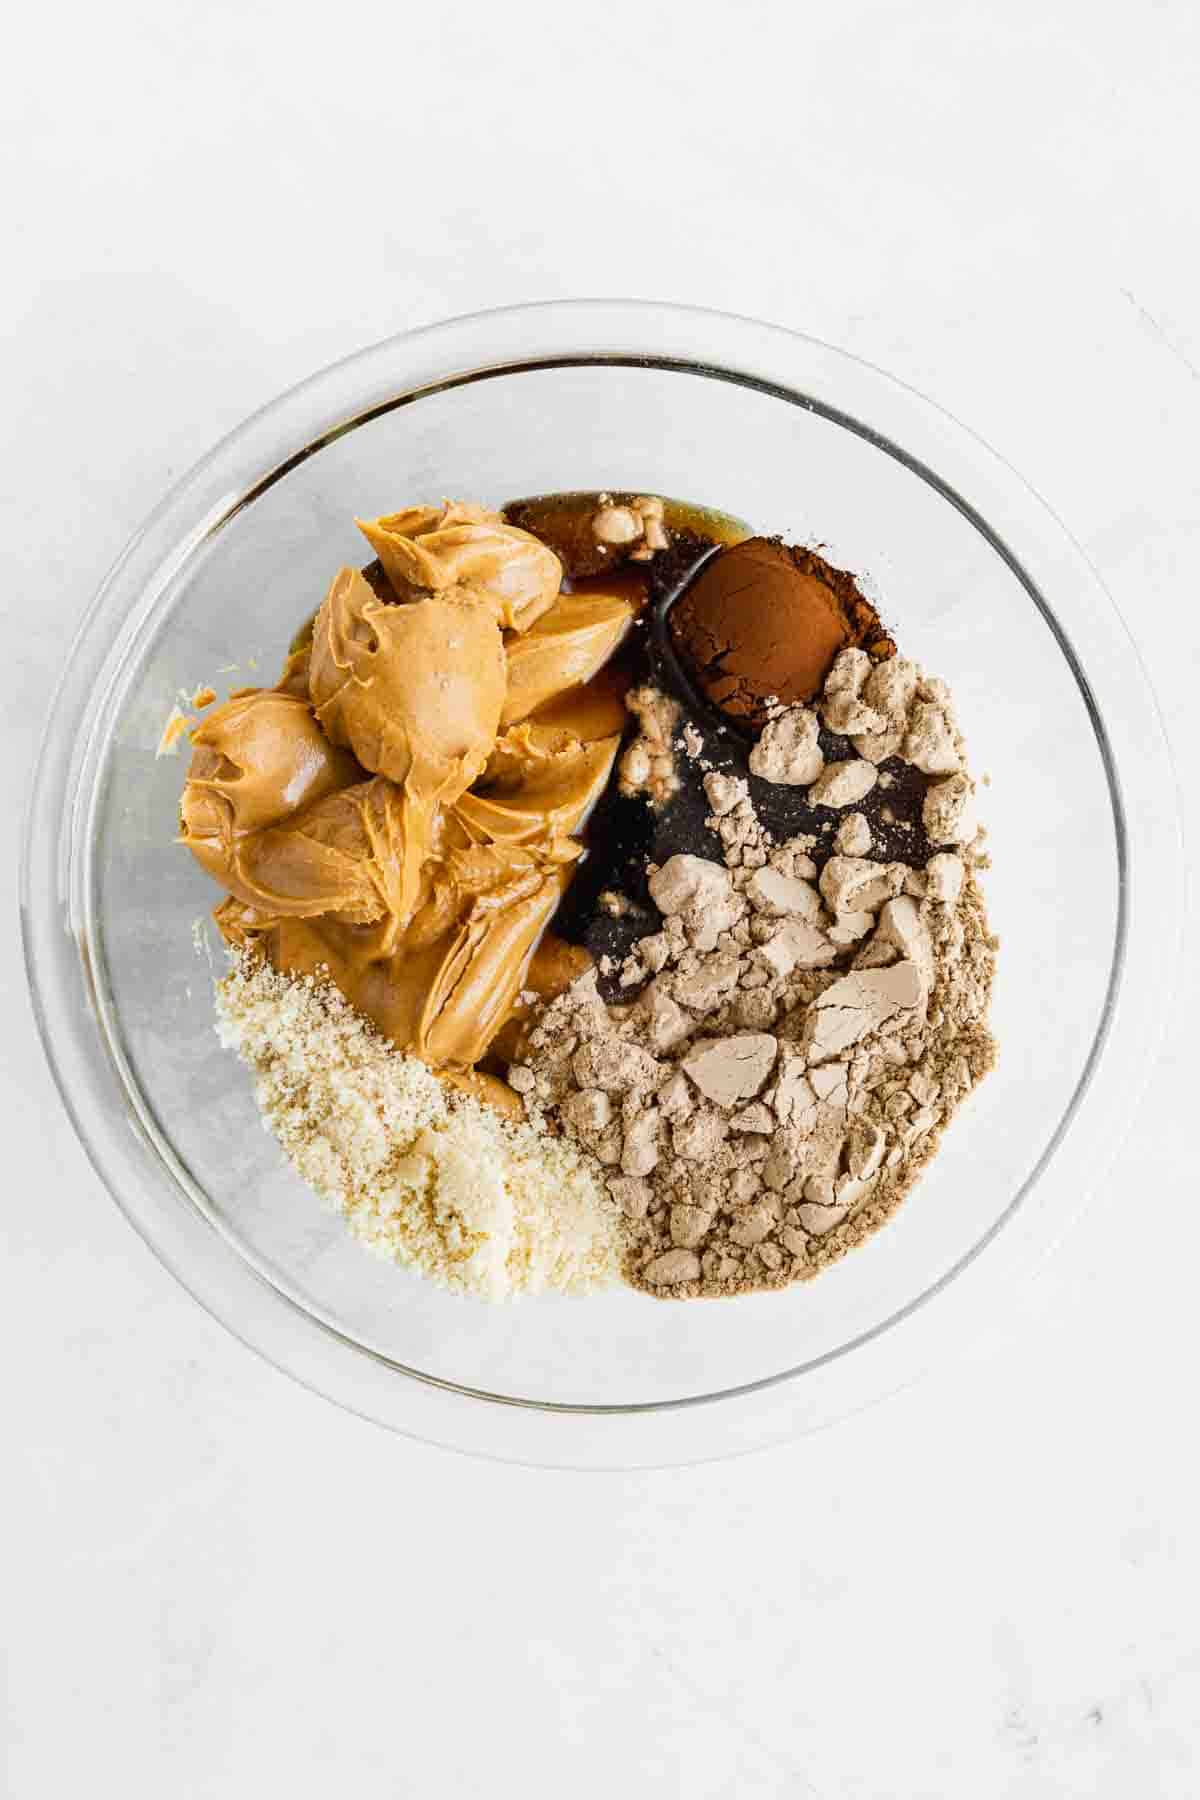 chocolate protein powder, peanut butter, almond flour, cocoa powder, and maple syrup in a glass bowl